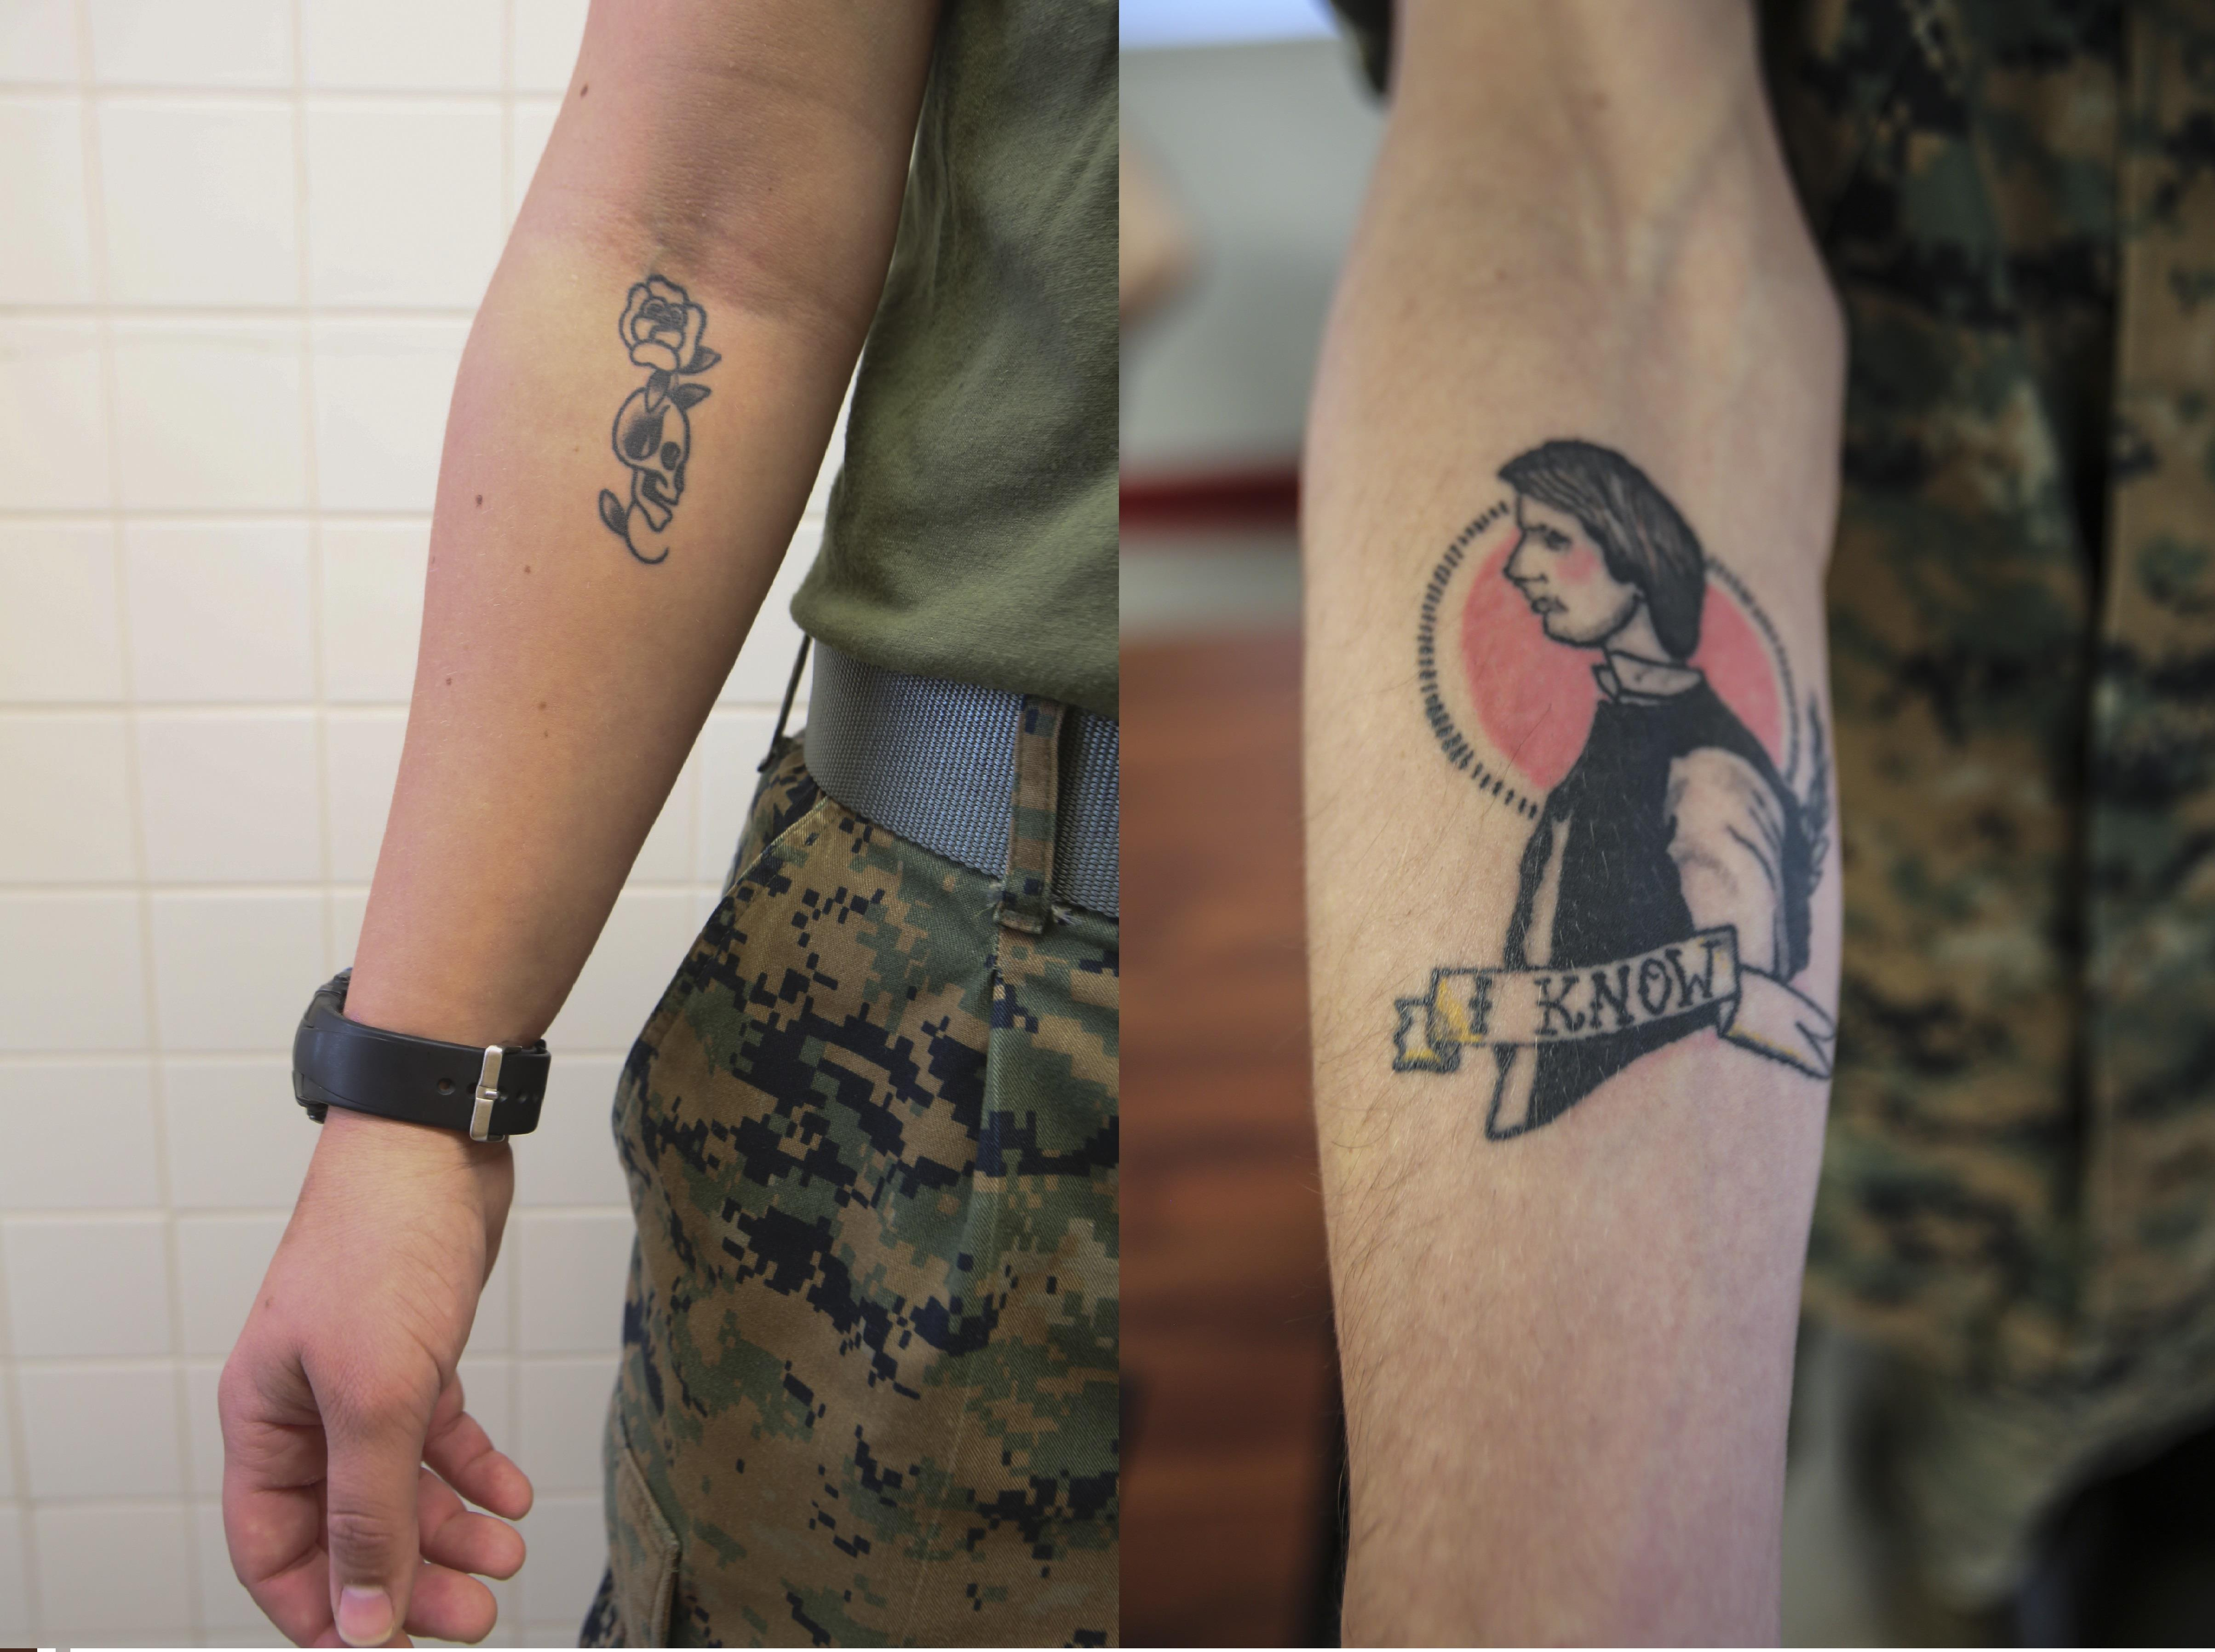 Right to bare arms marine corps new tattoo policy ii for Army tattoo policy wrist